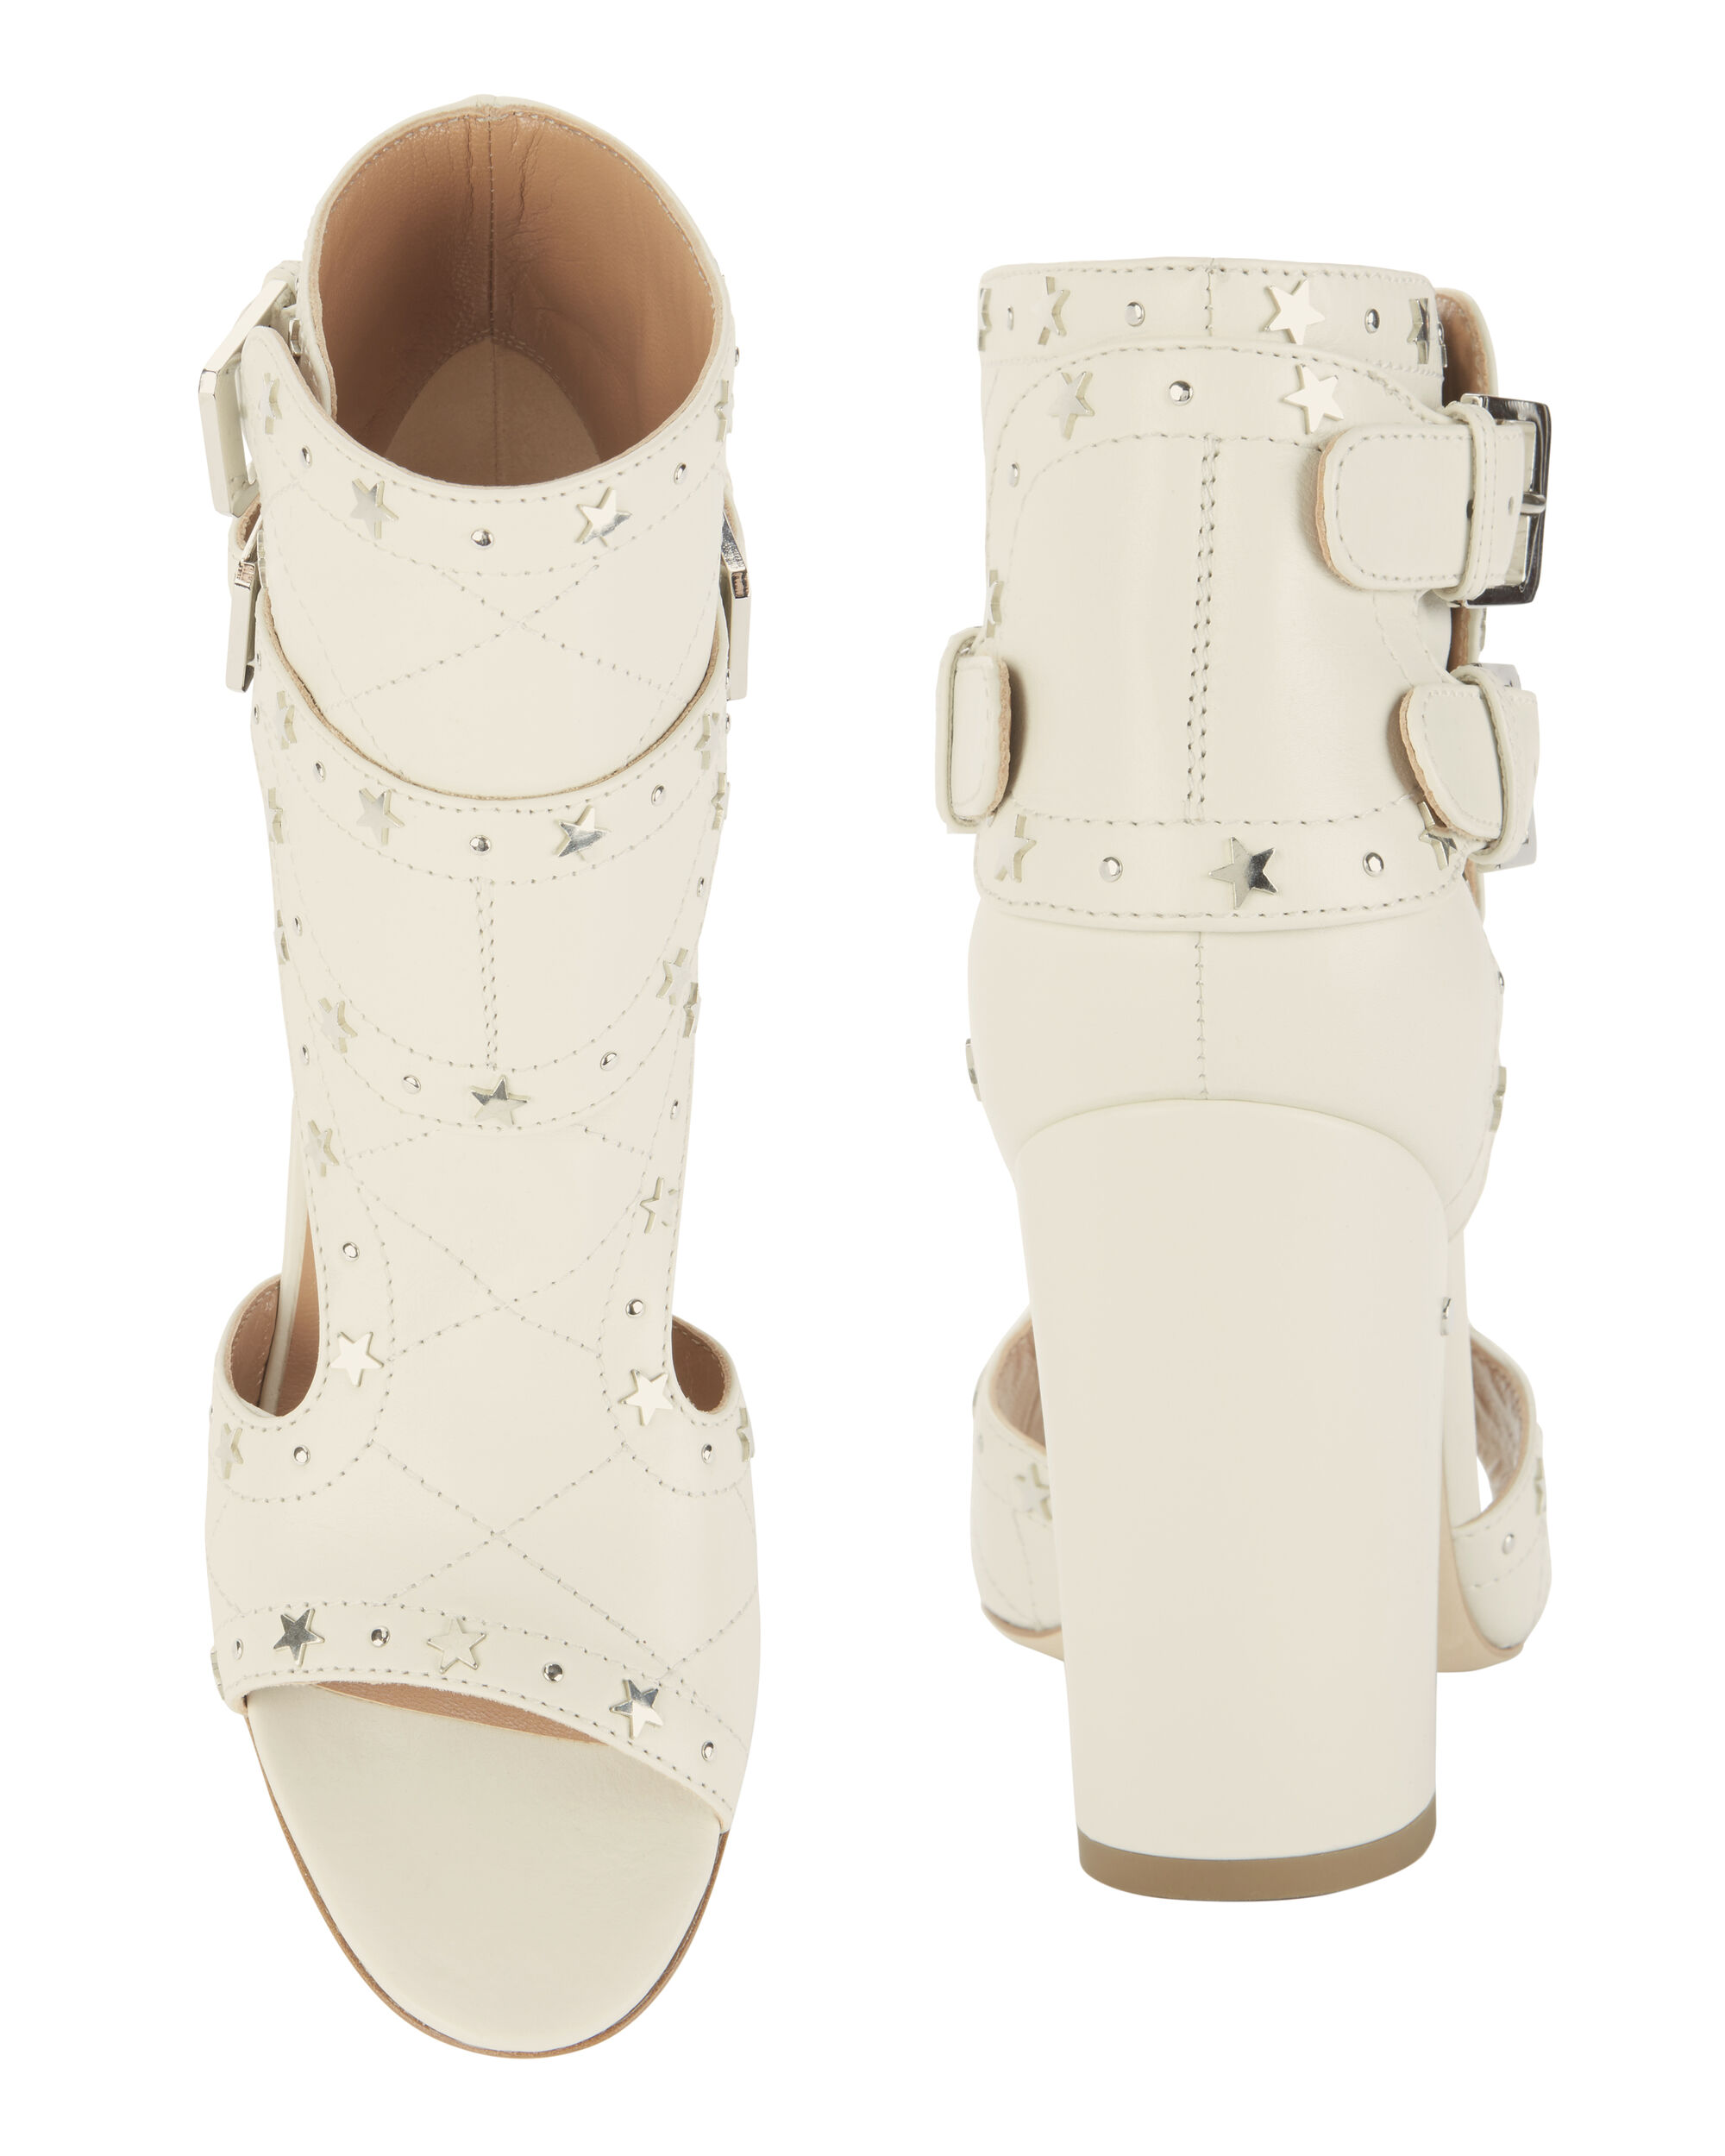 Rush Silver Stars Buckled Sandals, WHITE, hi-res